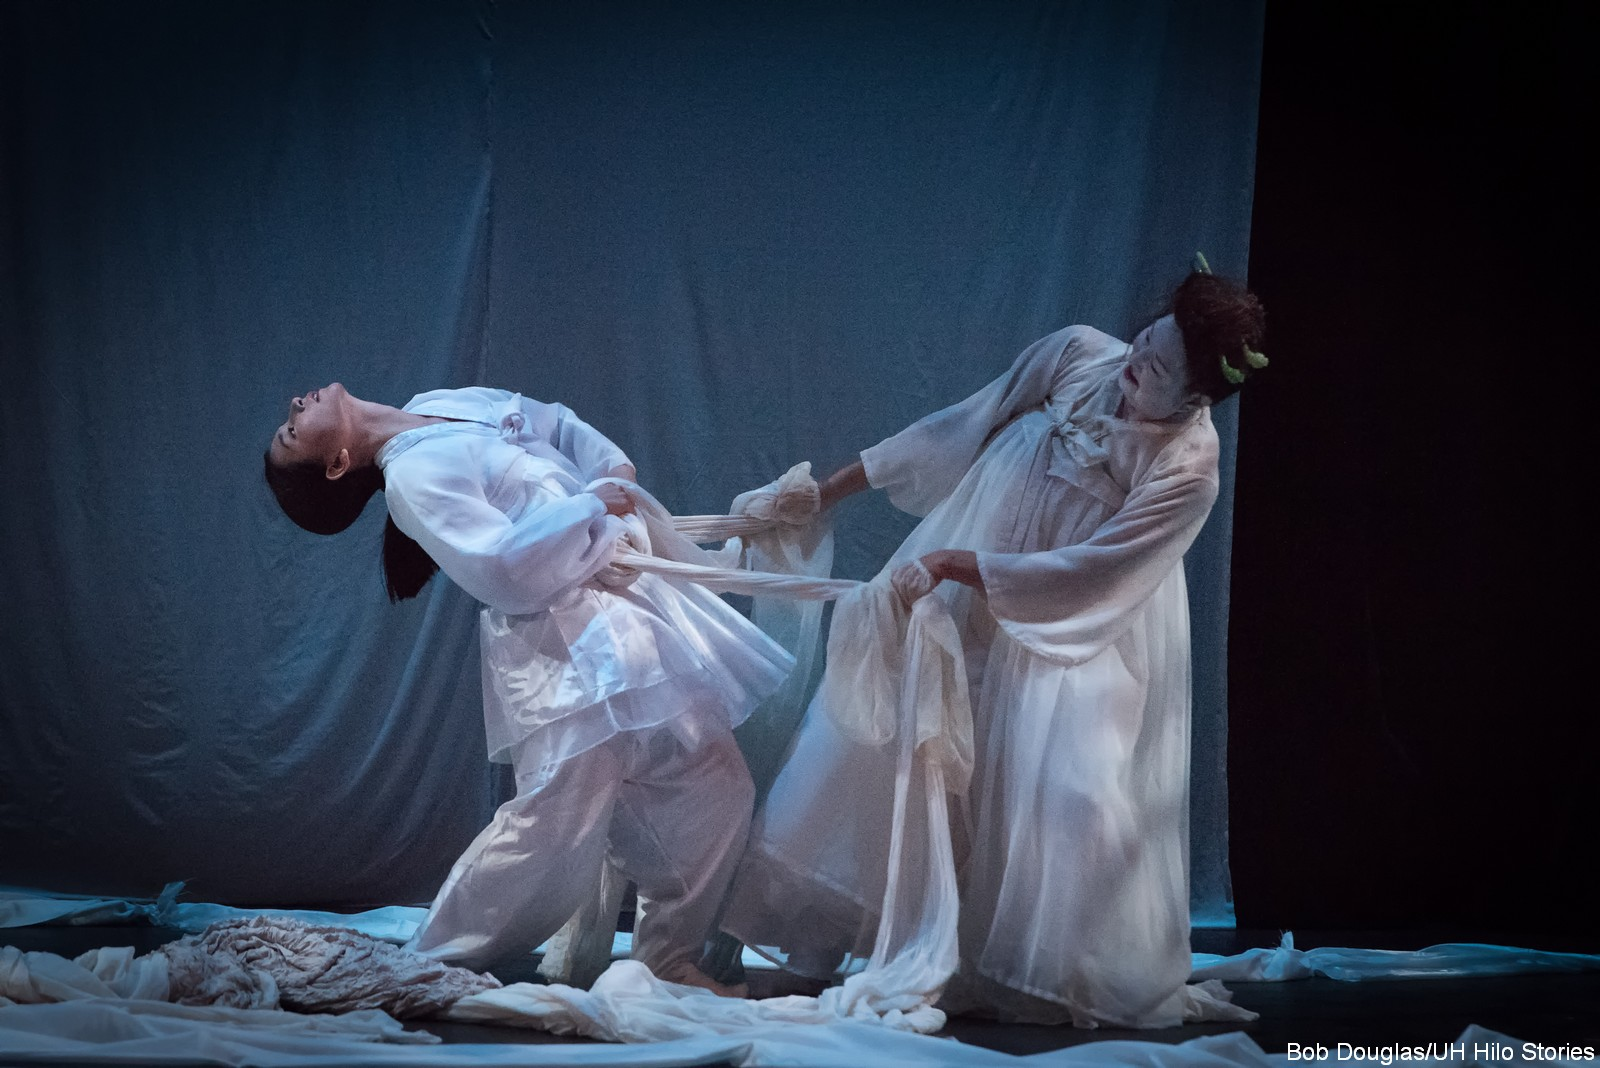 Two women in white performing, pulling at a long white piece of fabric.